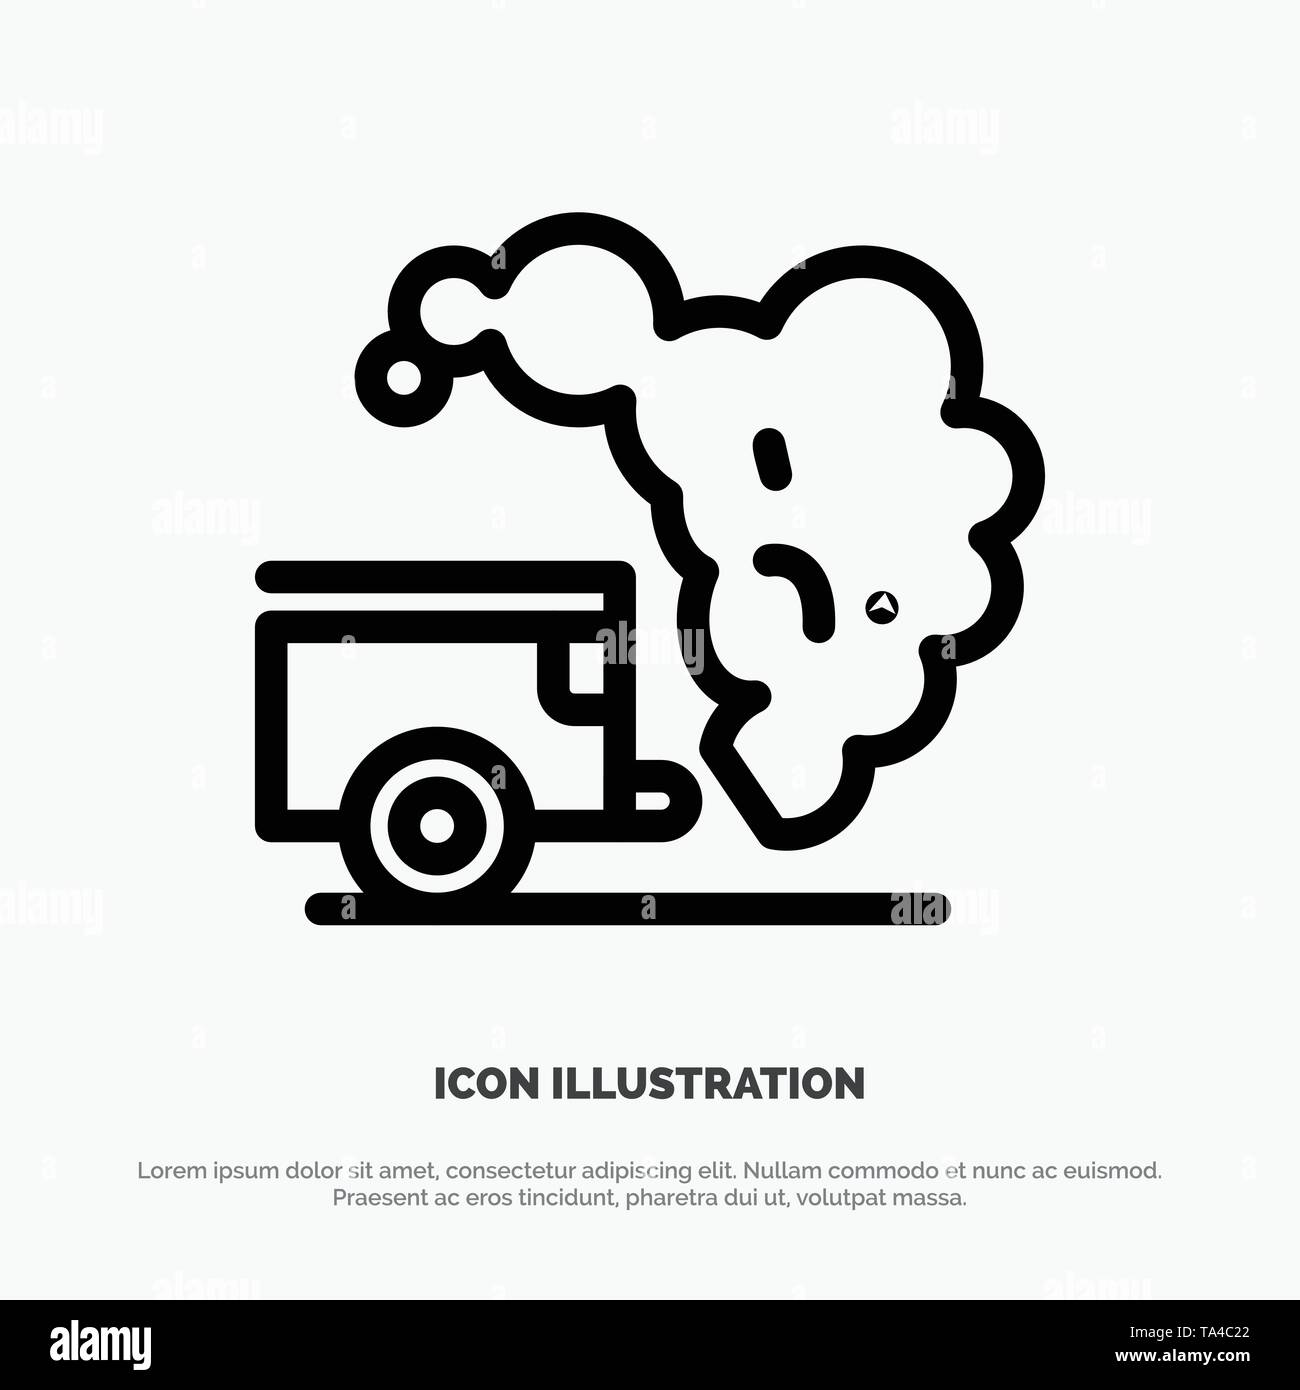 Dump, Environment, Garbage, Pollution Line Icon Vector - Stock Image